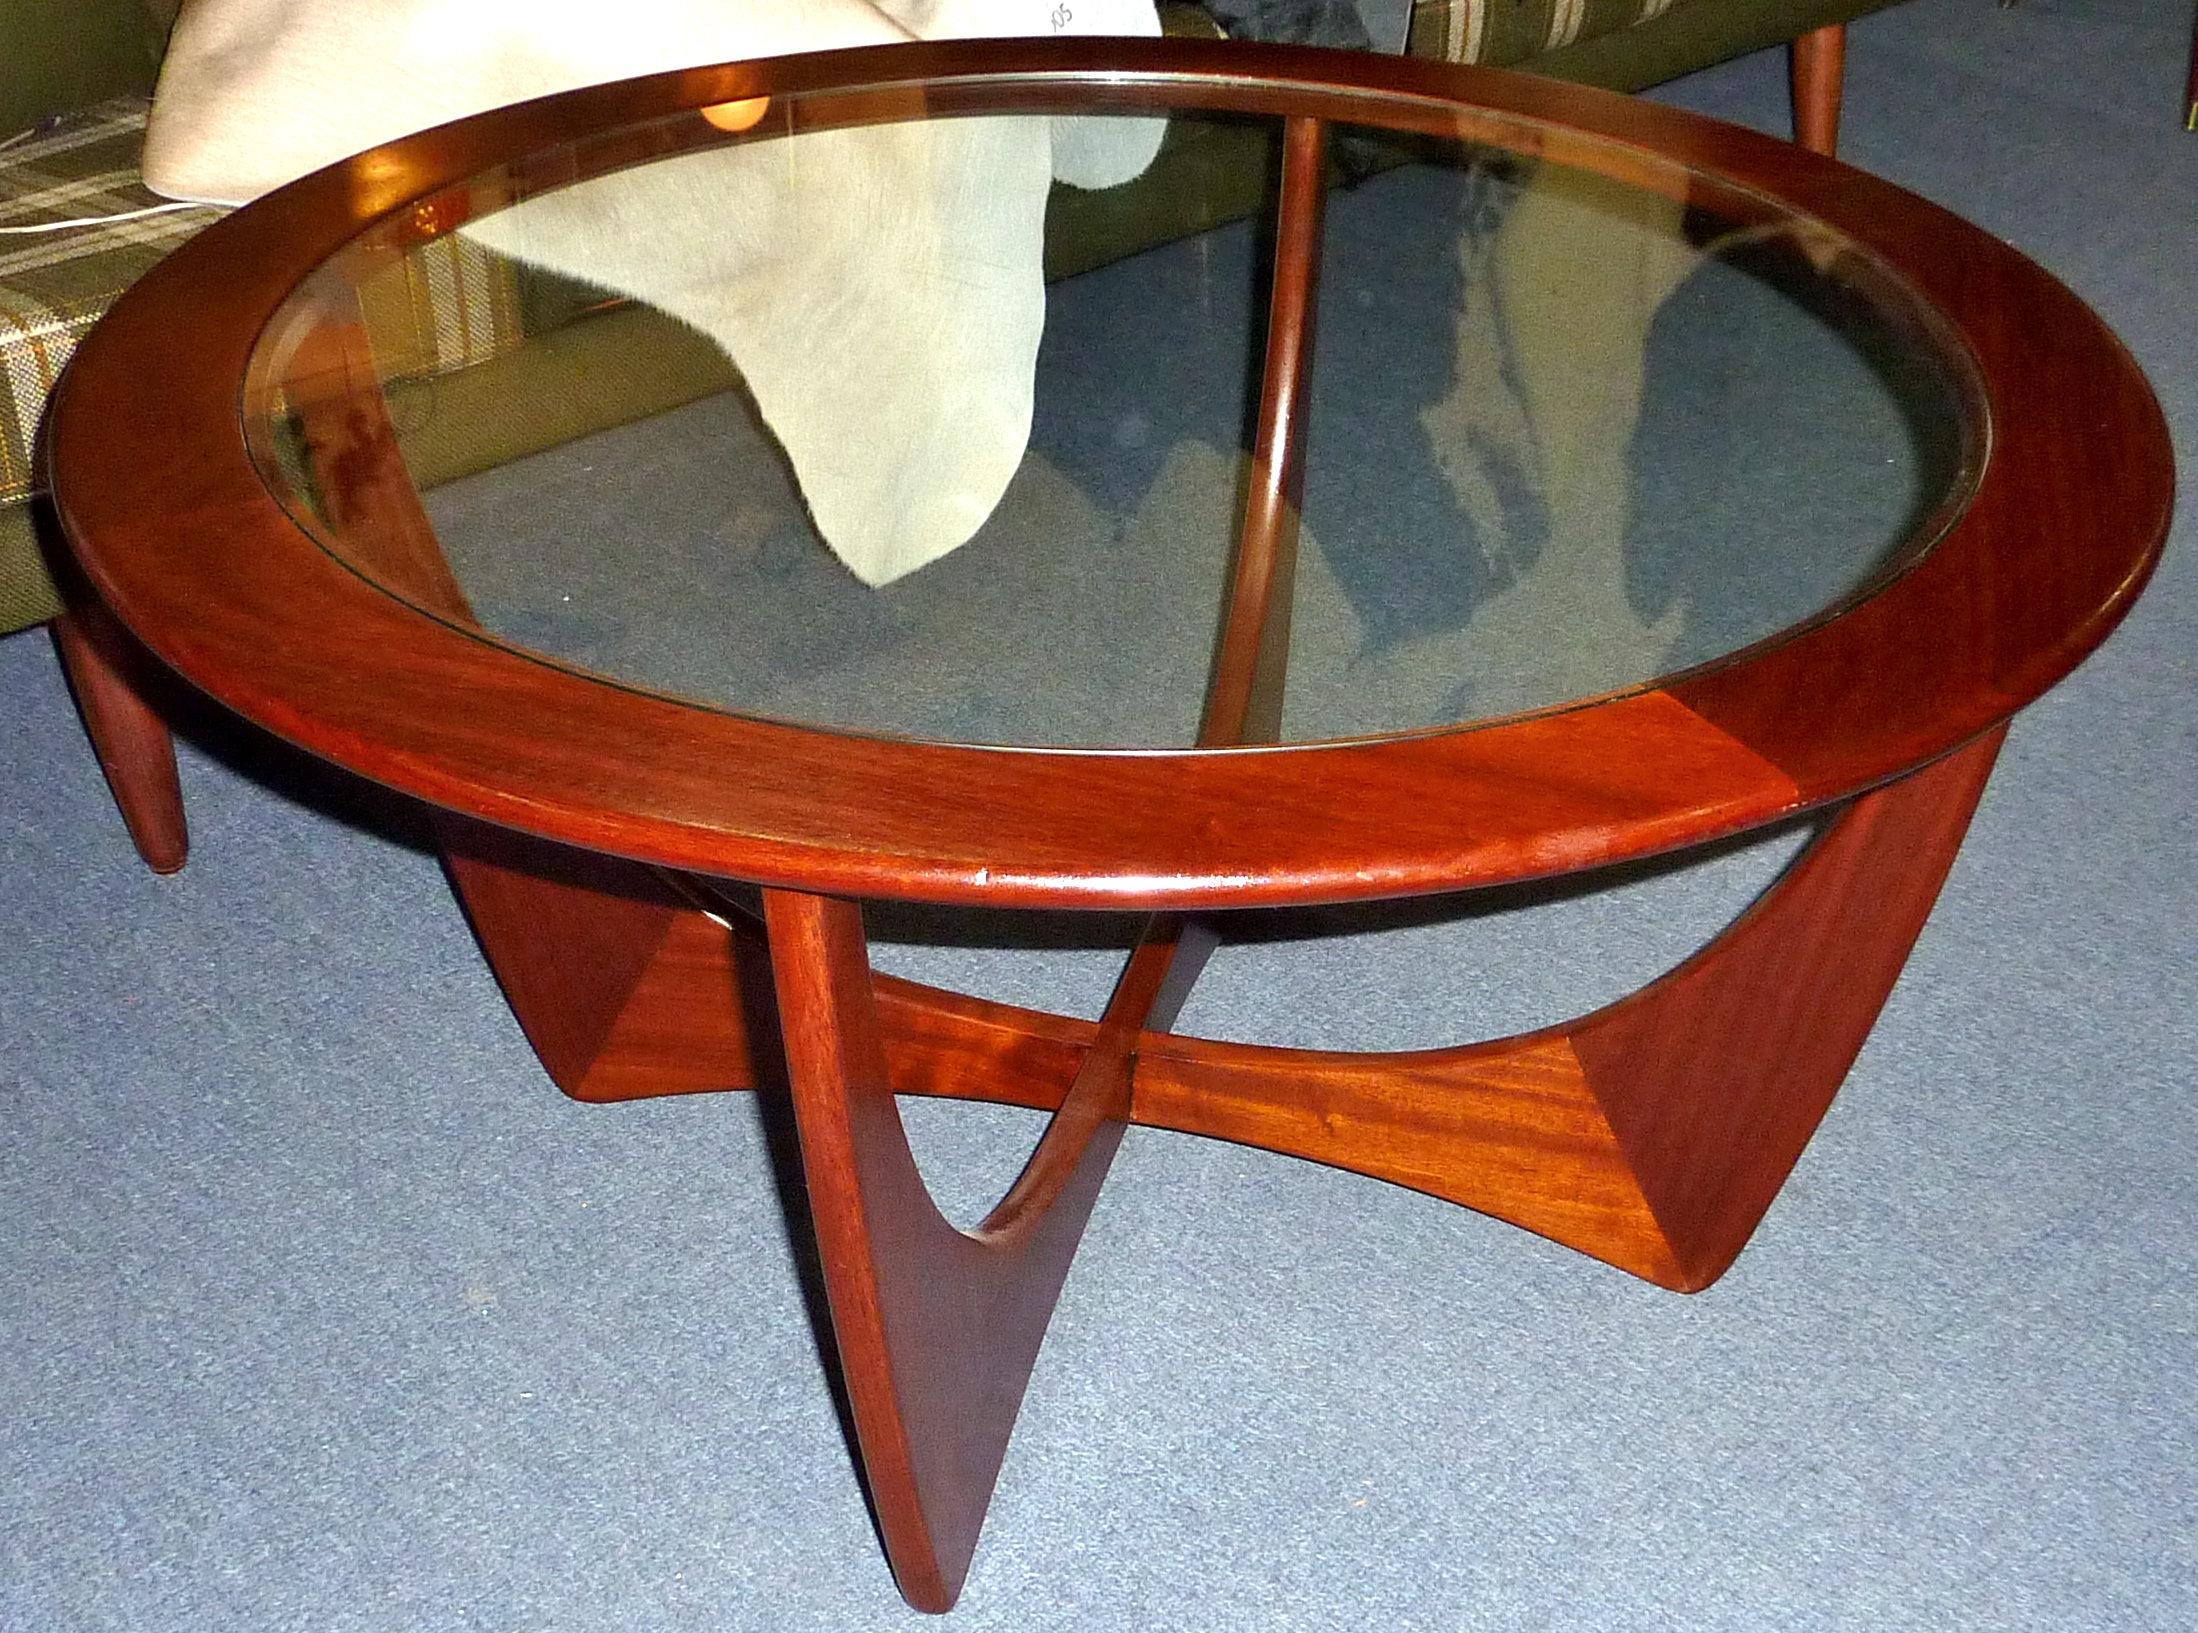 Astro Coffee Table.File Afrormosia Astro Coffee Table By G Plan Jpg Wikimedia Commons